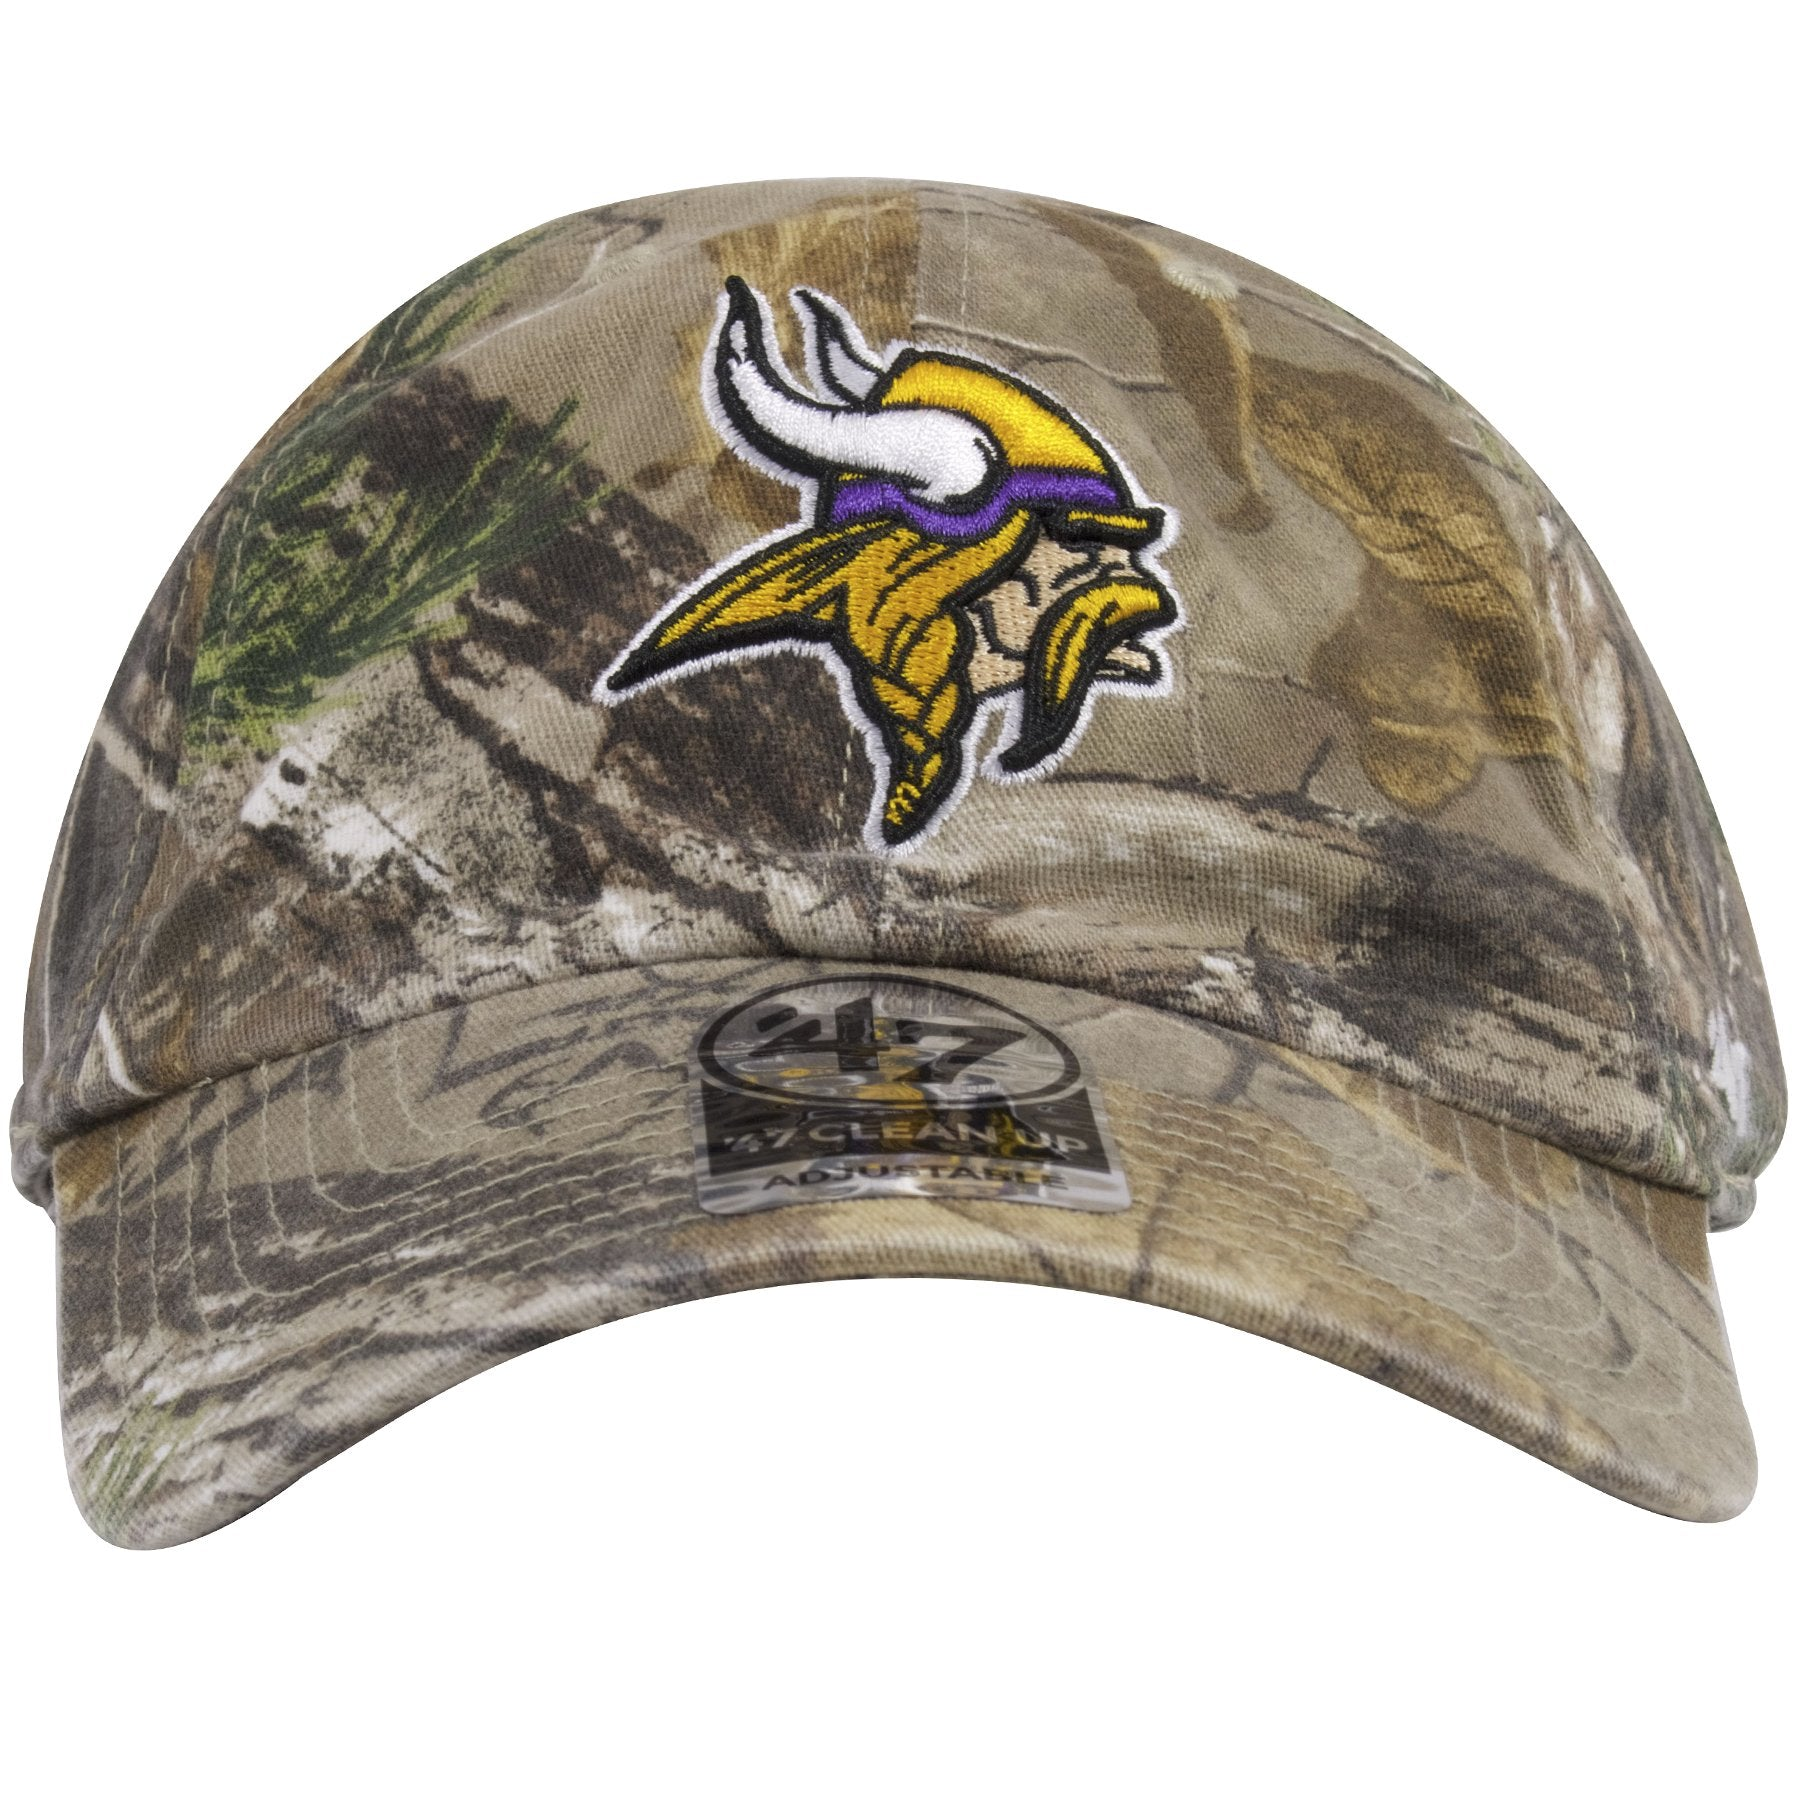 f68f0562f The front of this Minnesota Vikings Realtree Camo Dad Hat shows the Vikings  logo heavily embroidered